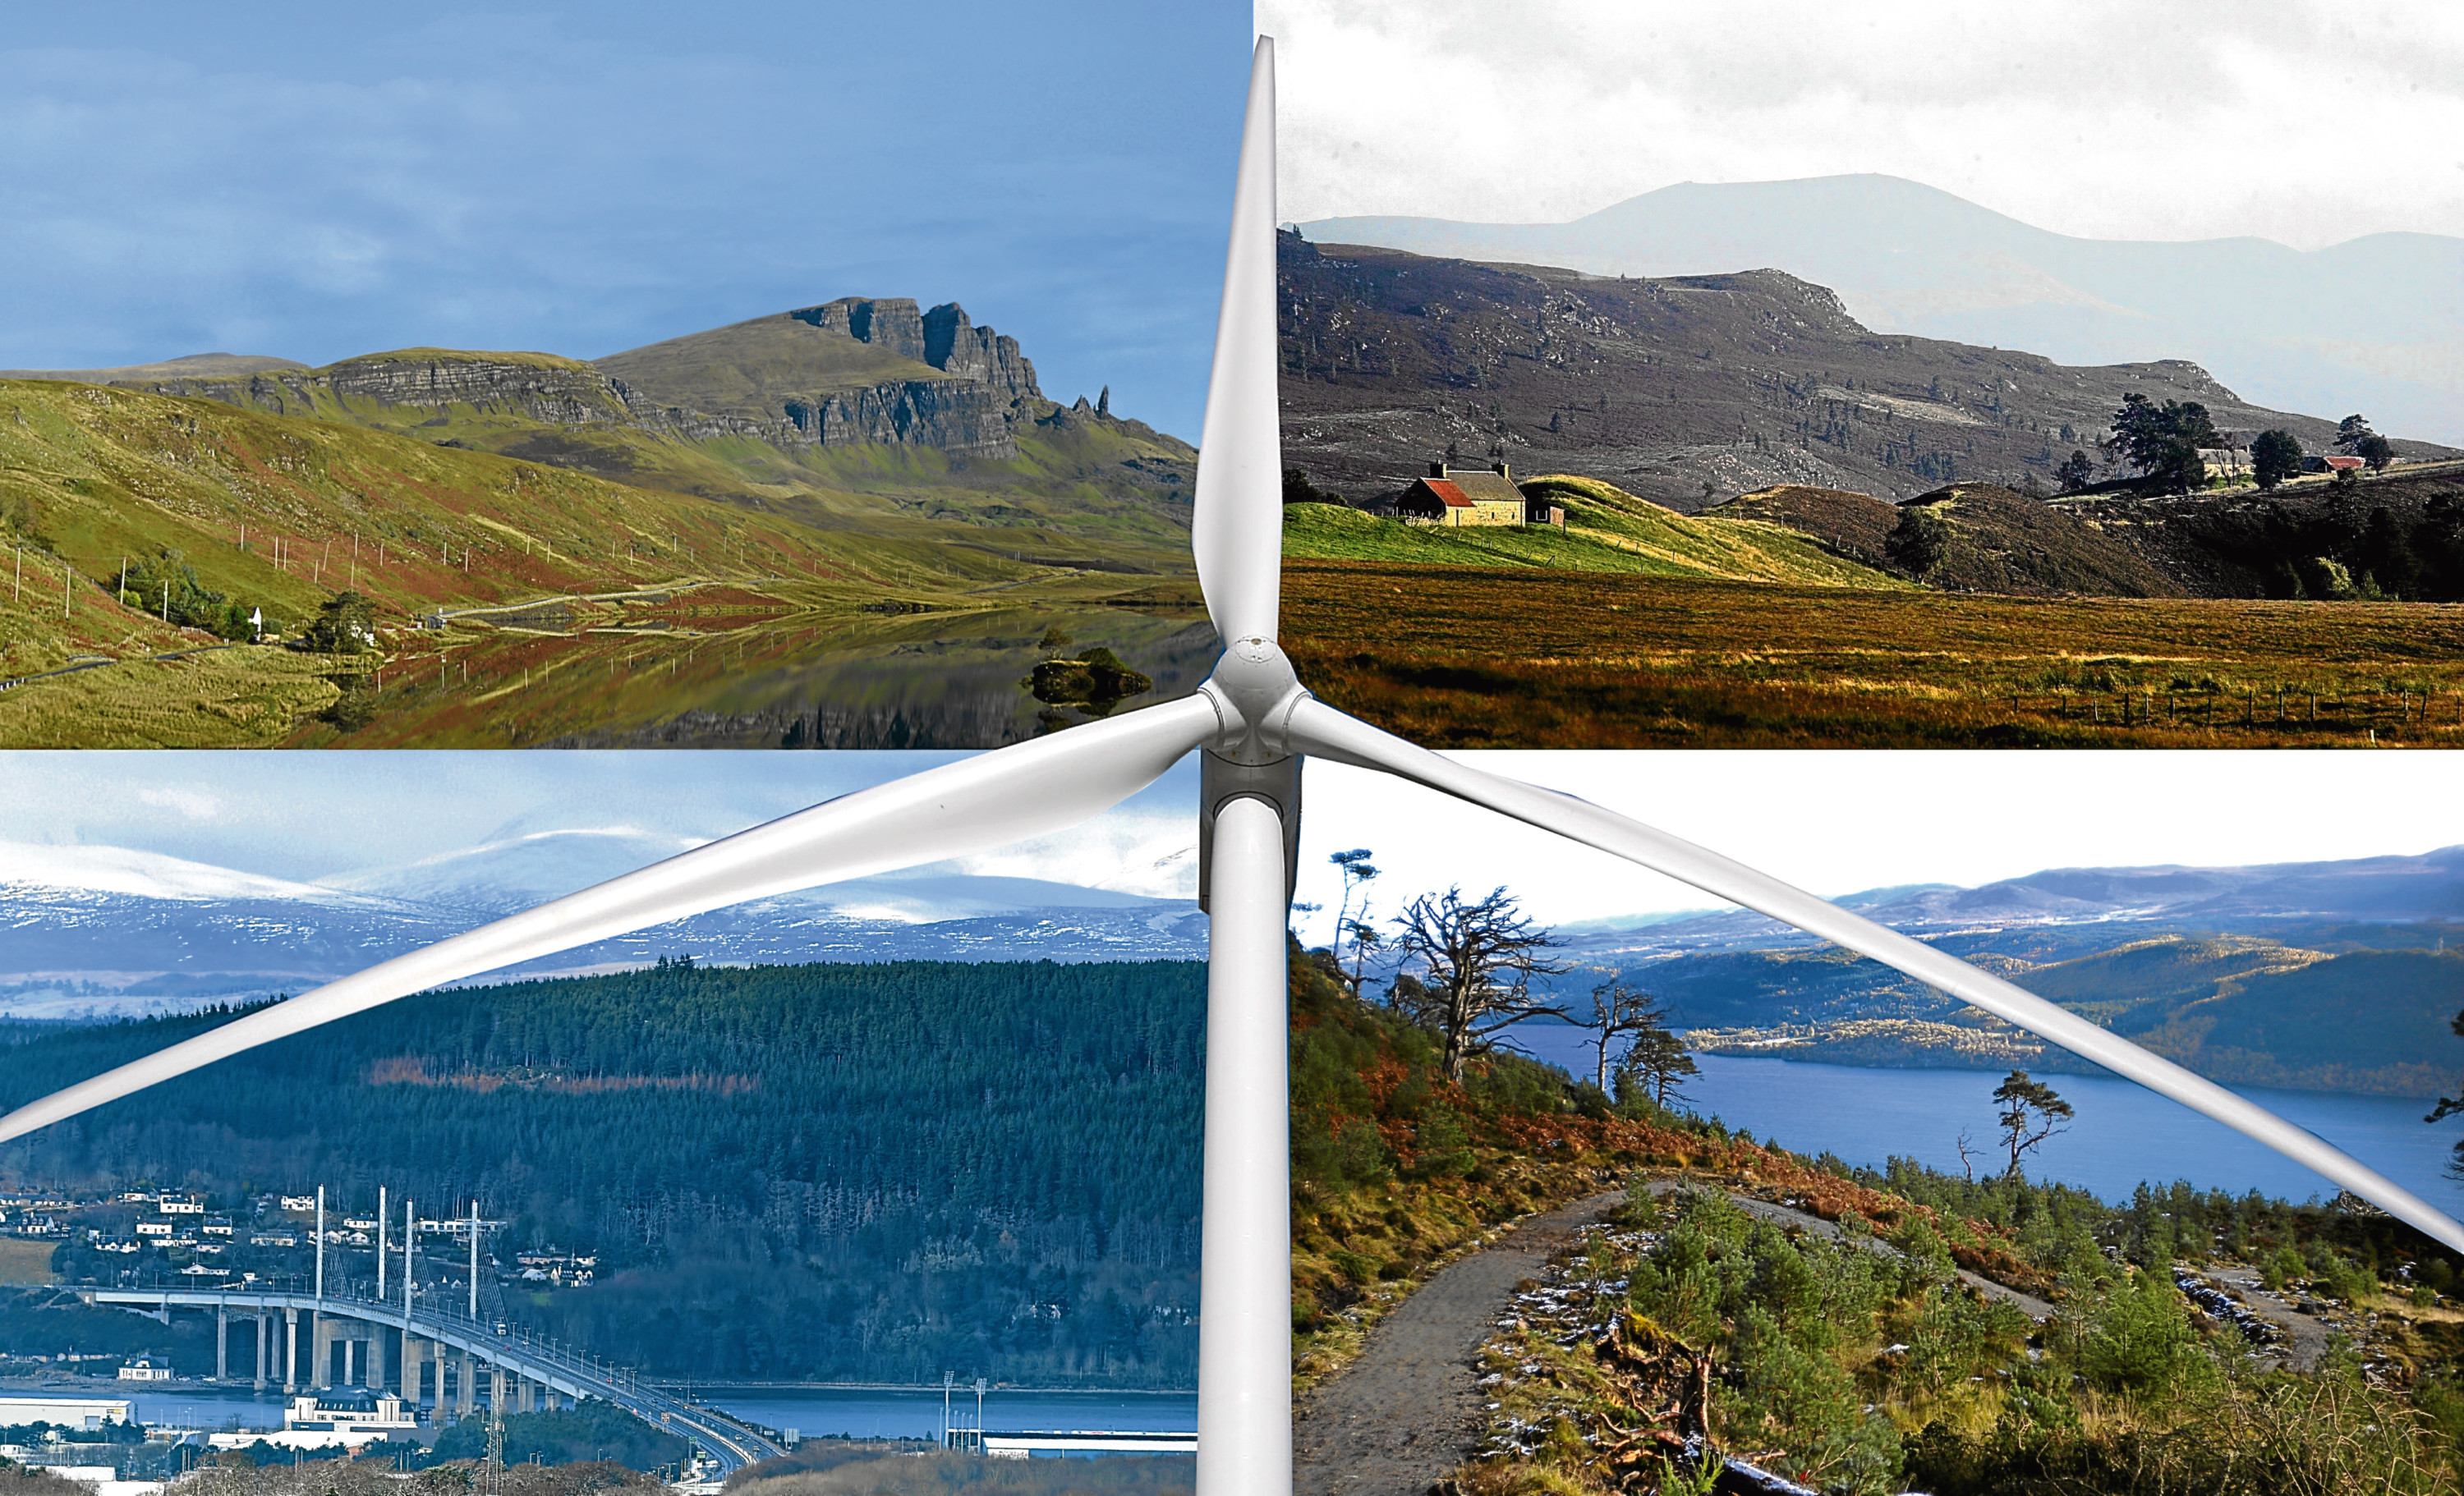 MONTAGE for windfarm story - clockwise from top left: Old Man Of Storr on Skye, Dava Moor, The Great Glen Way and The Black Isle.